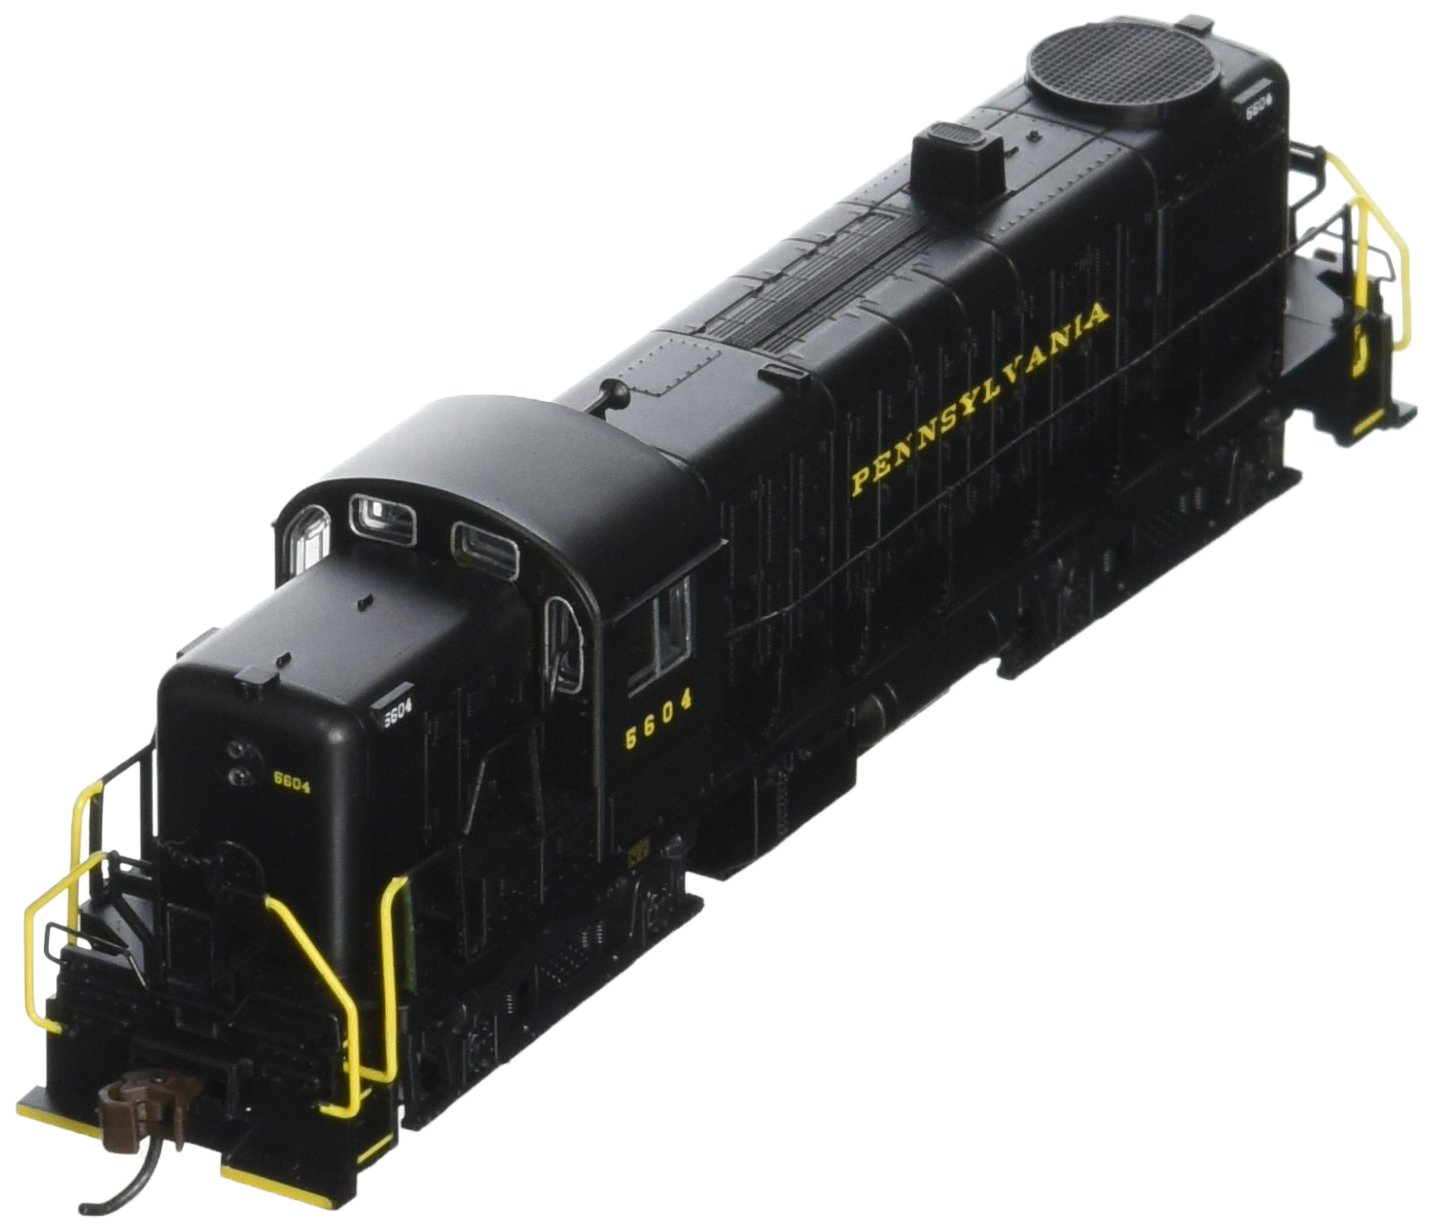 Bachmann Industries Alco RS-3 Locomotive PRR 5604 (Black with Yellow Lettering) N Scale - DCC on Board